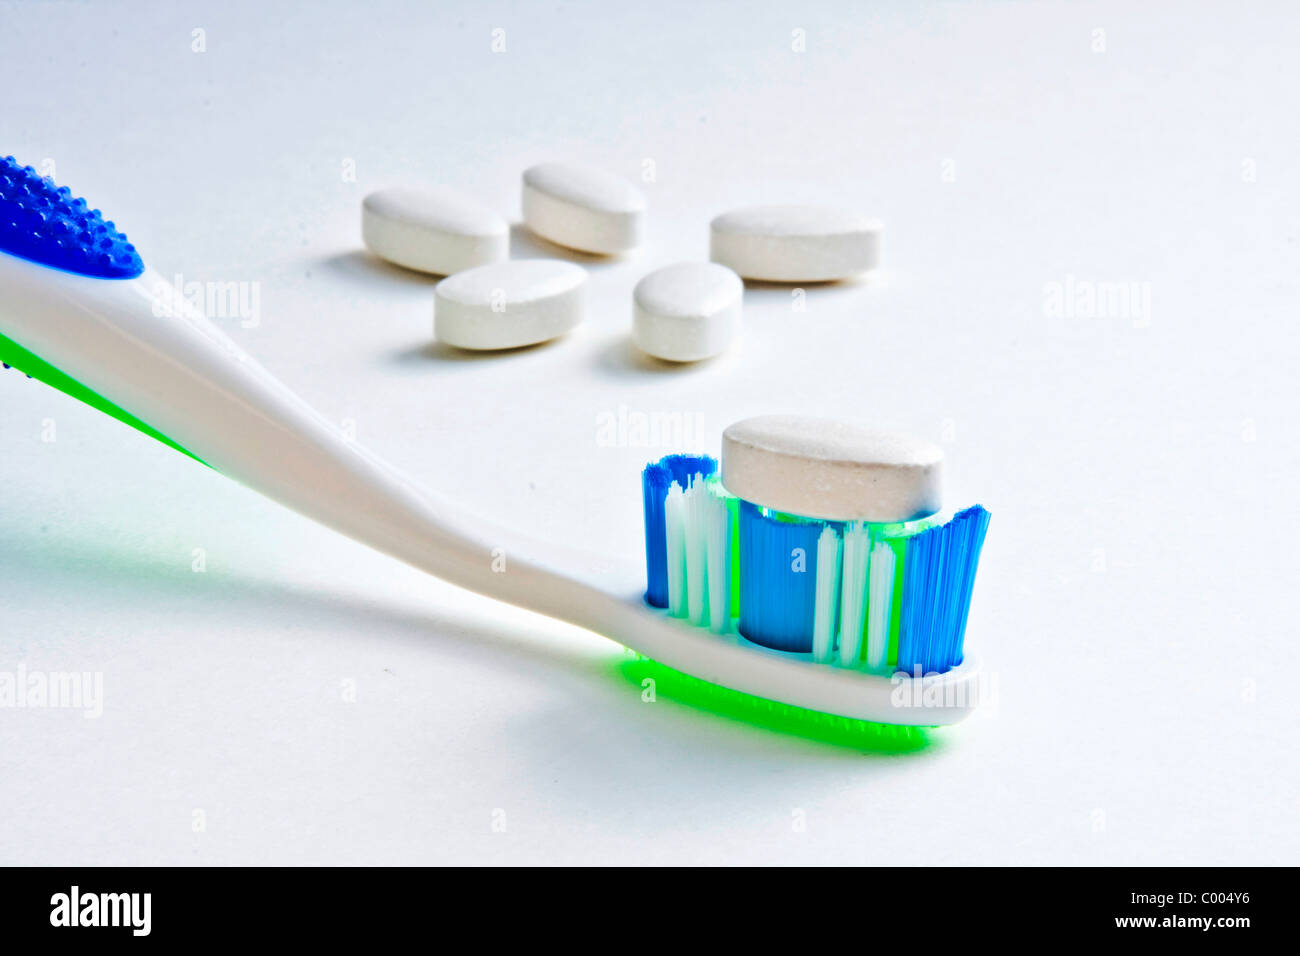 Calcium tablet resting on toothbrush bristles with other tablets in background - Stock Image